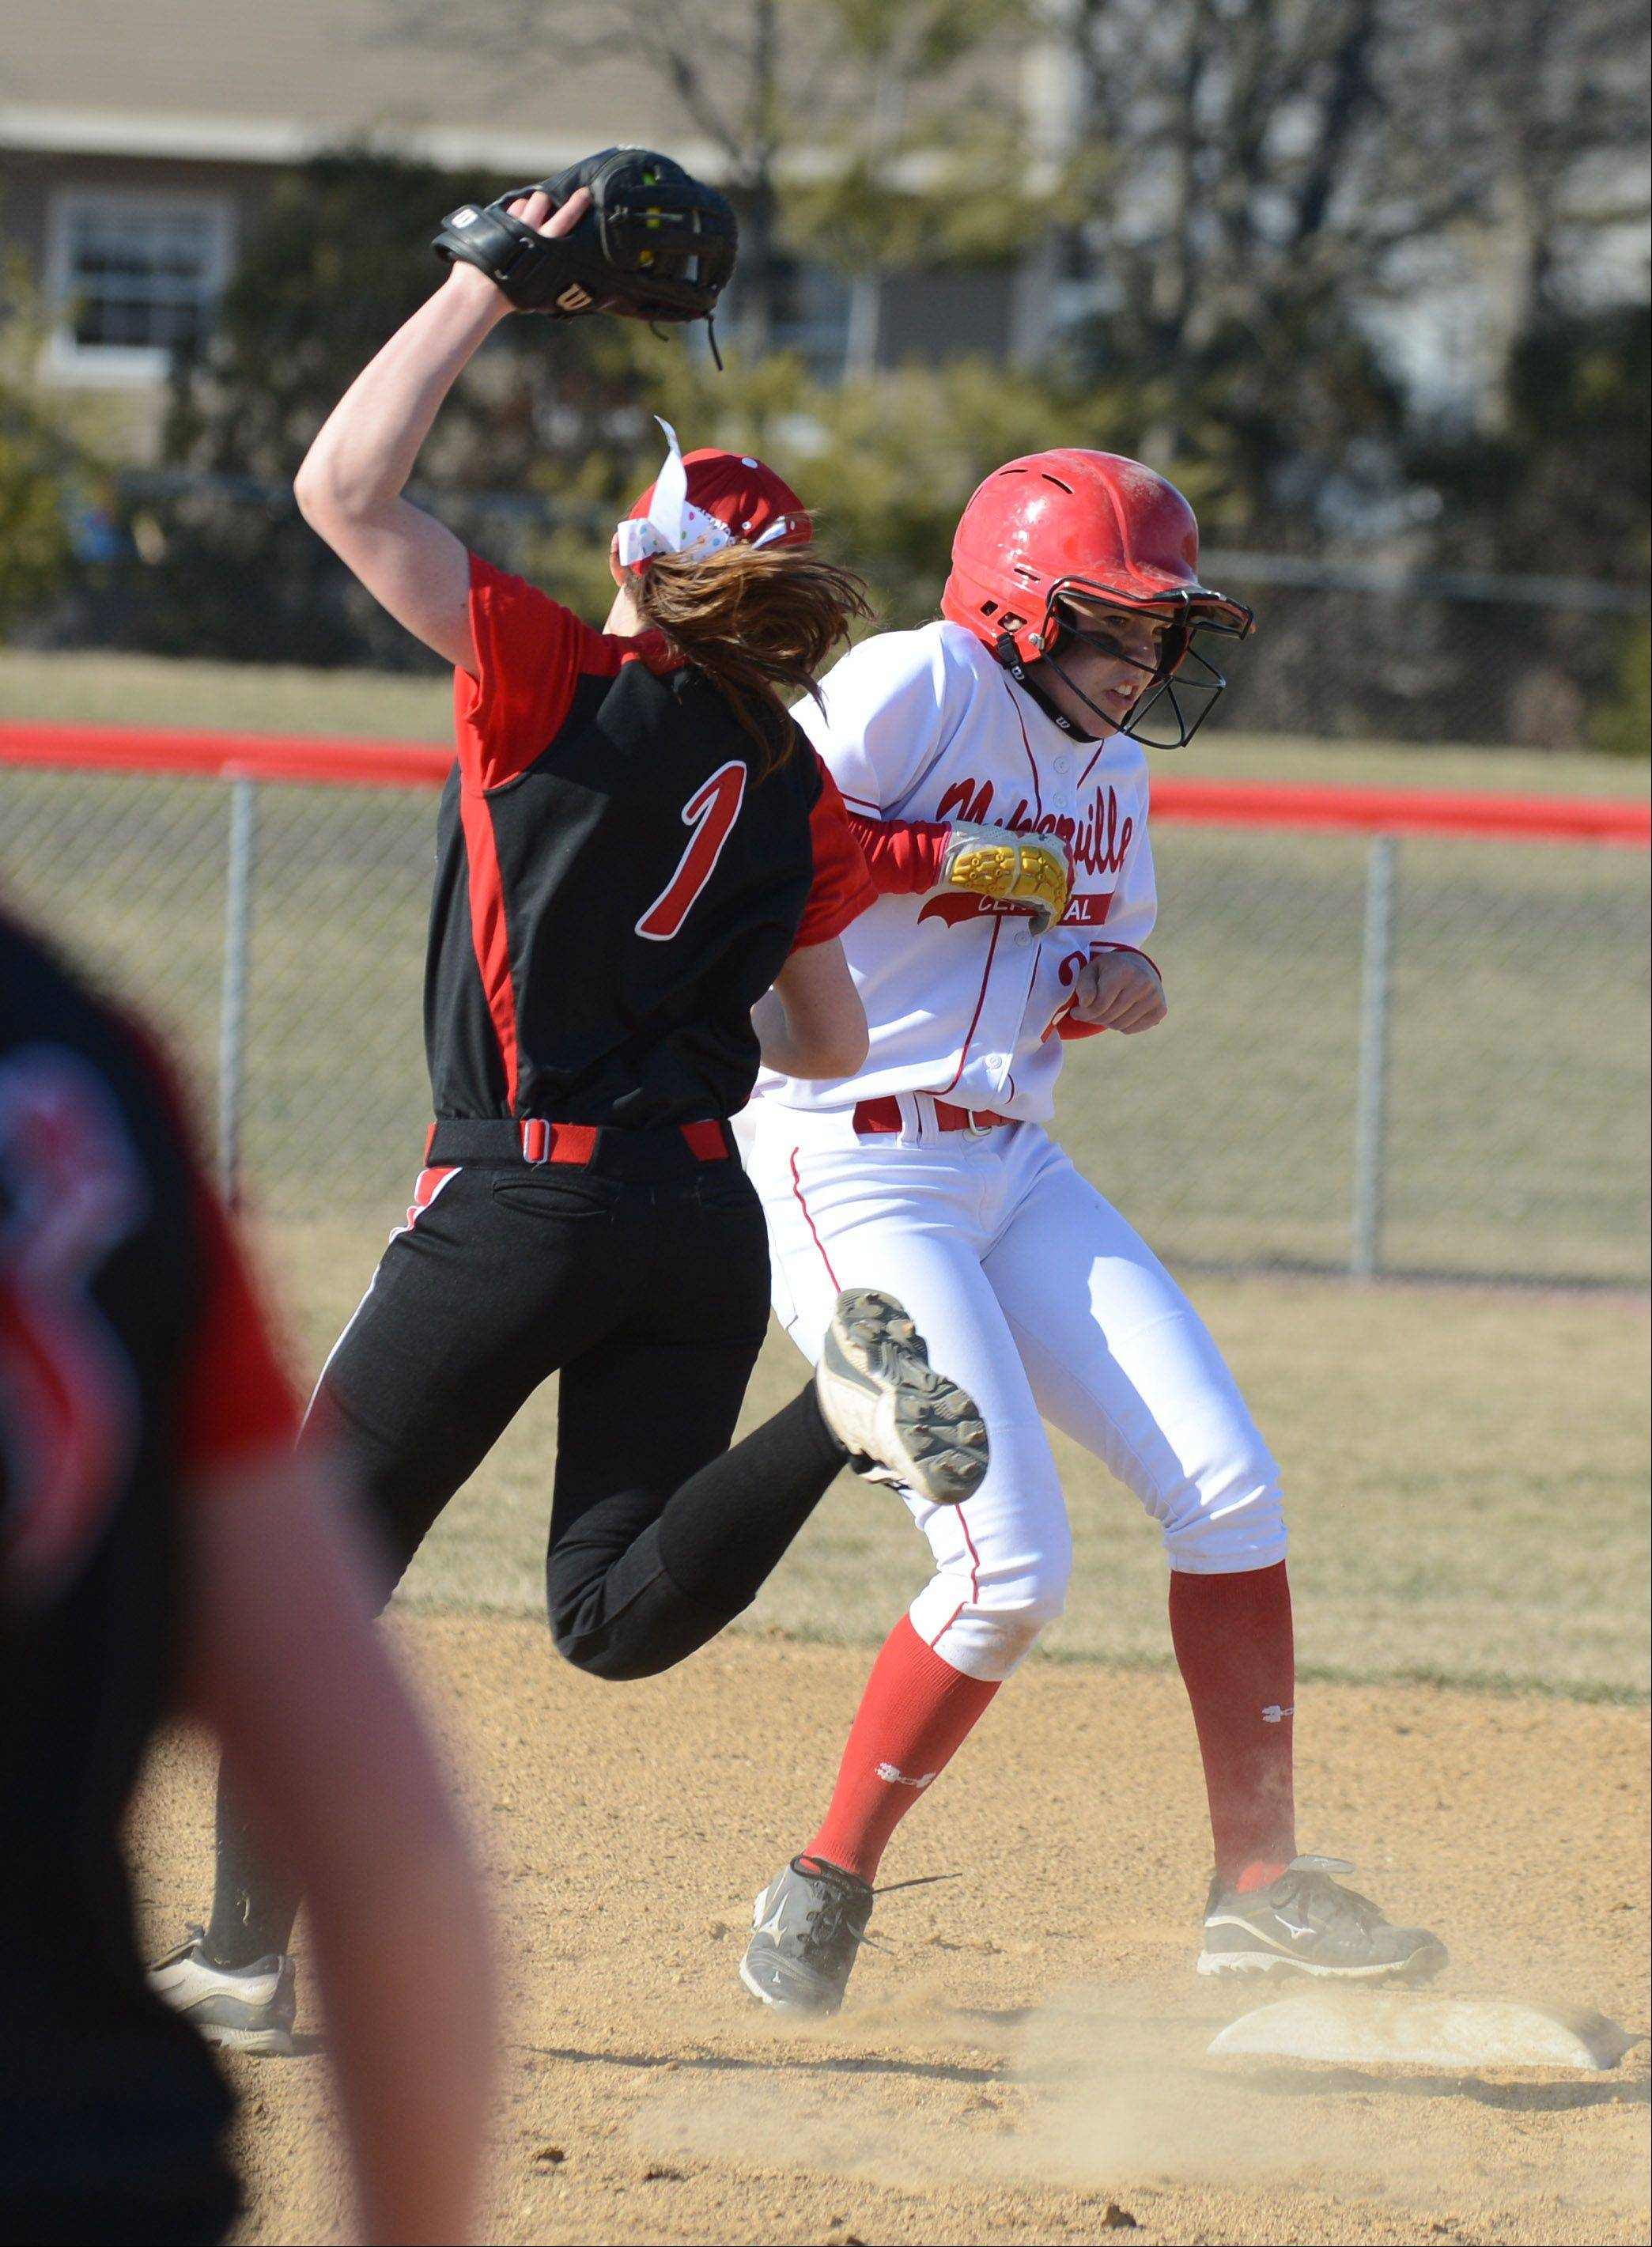 Ali Michalick of Benet trie to put the tag on Maddi Doane of Naperville Central during the Naperville Central at Benet softball game Thursday. This was at second. Shewas safe.